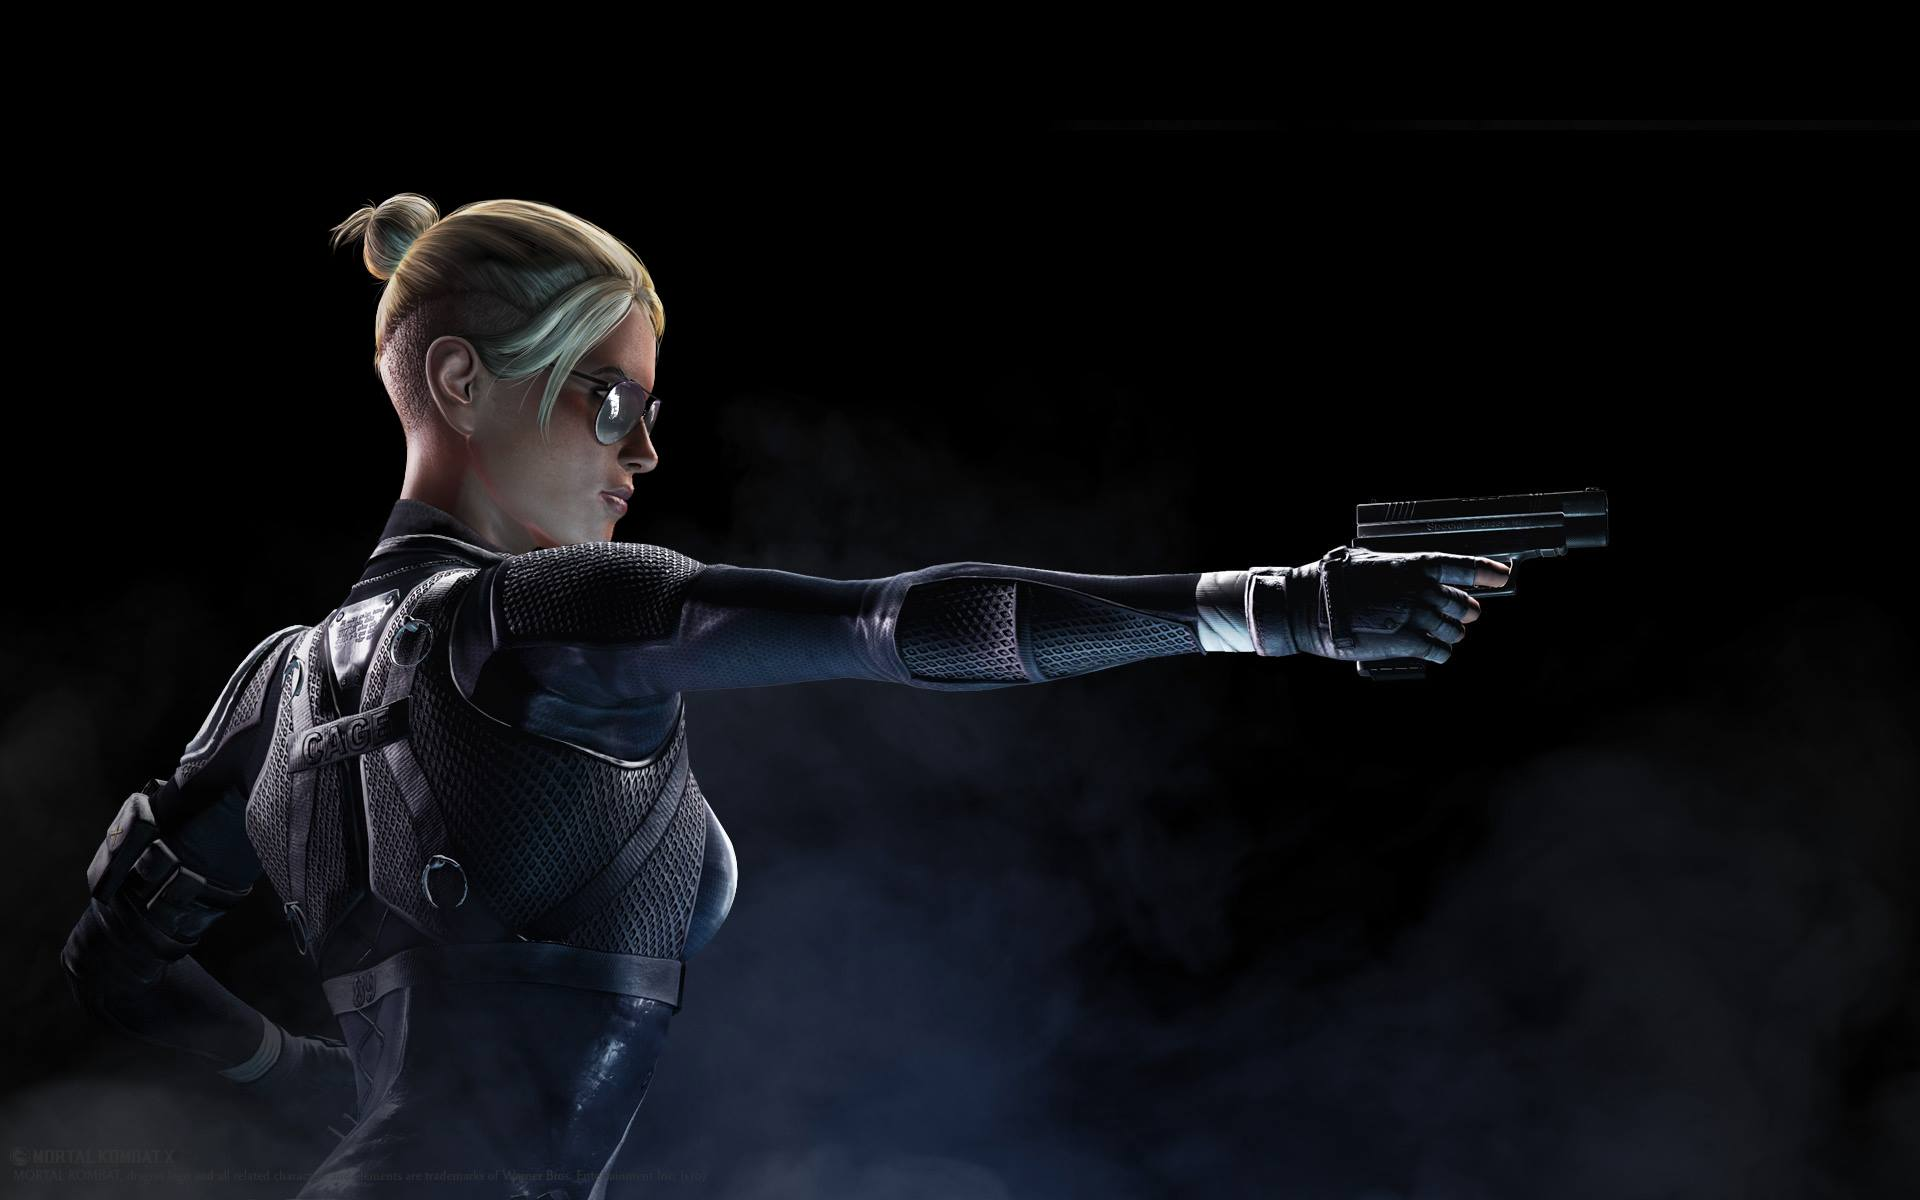 Johnny Cage's daughter Cassie Cage